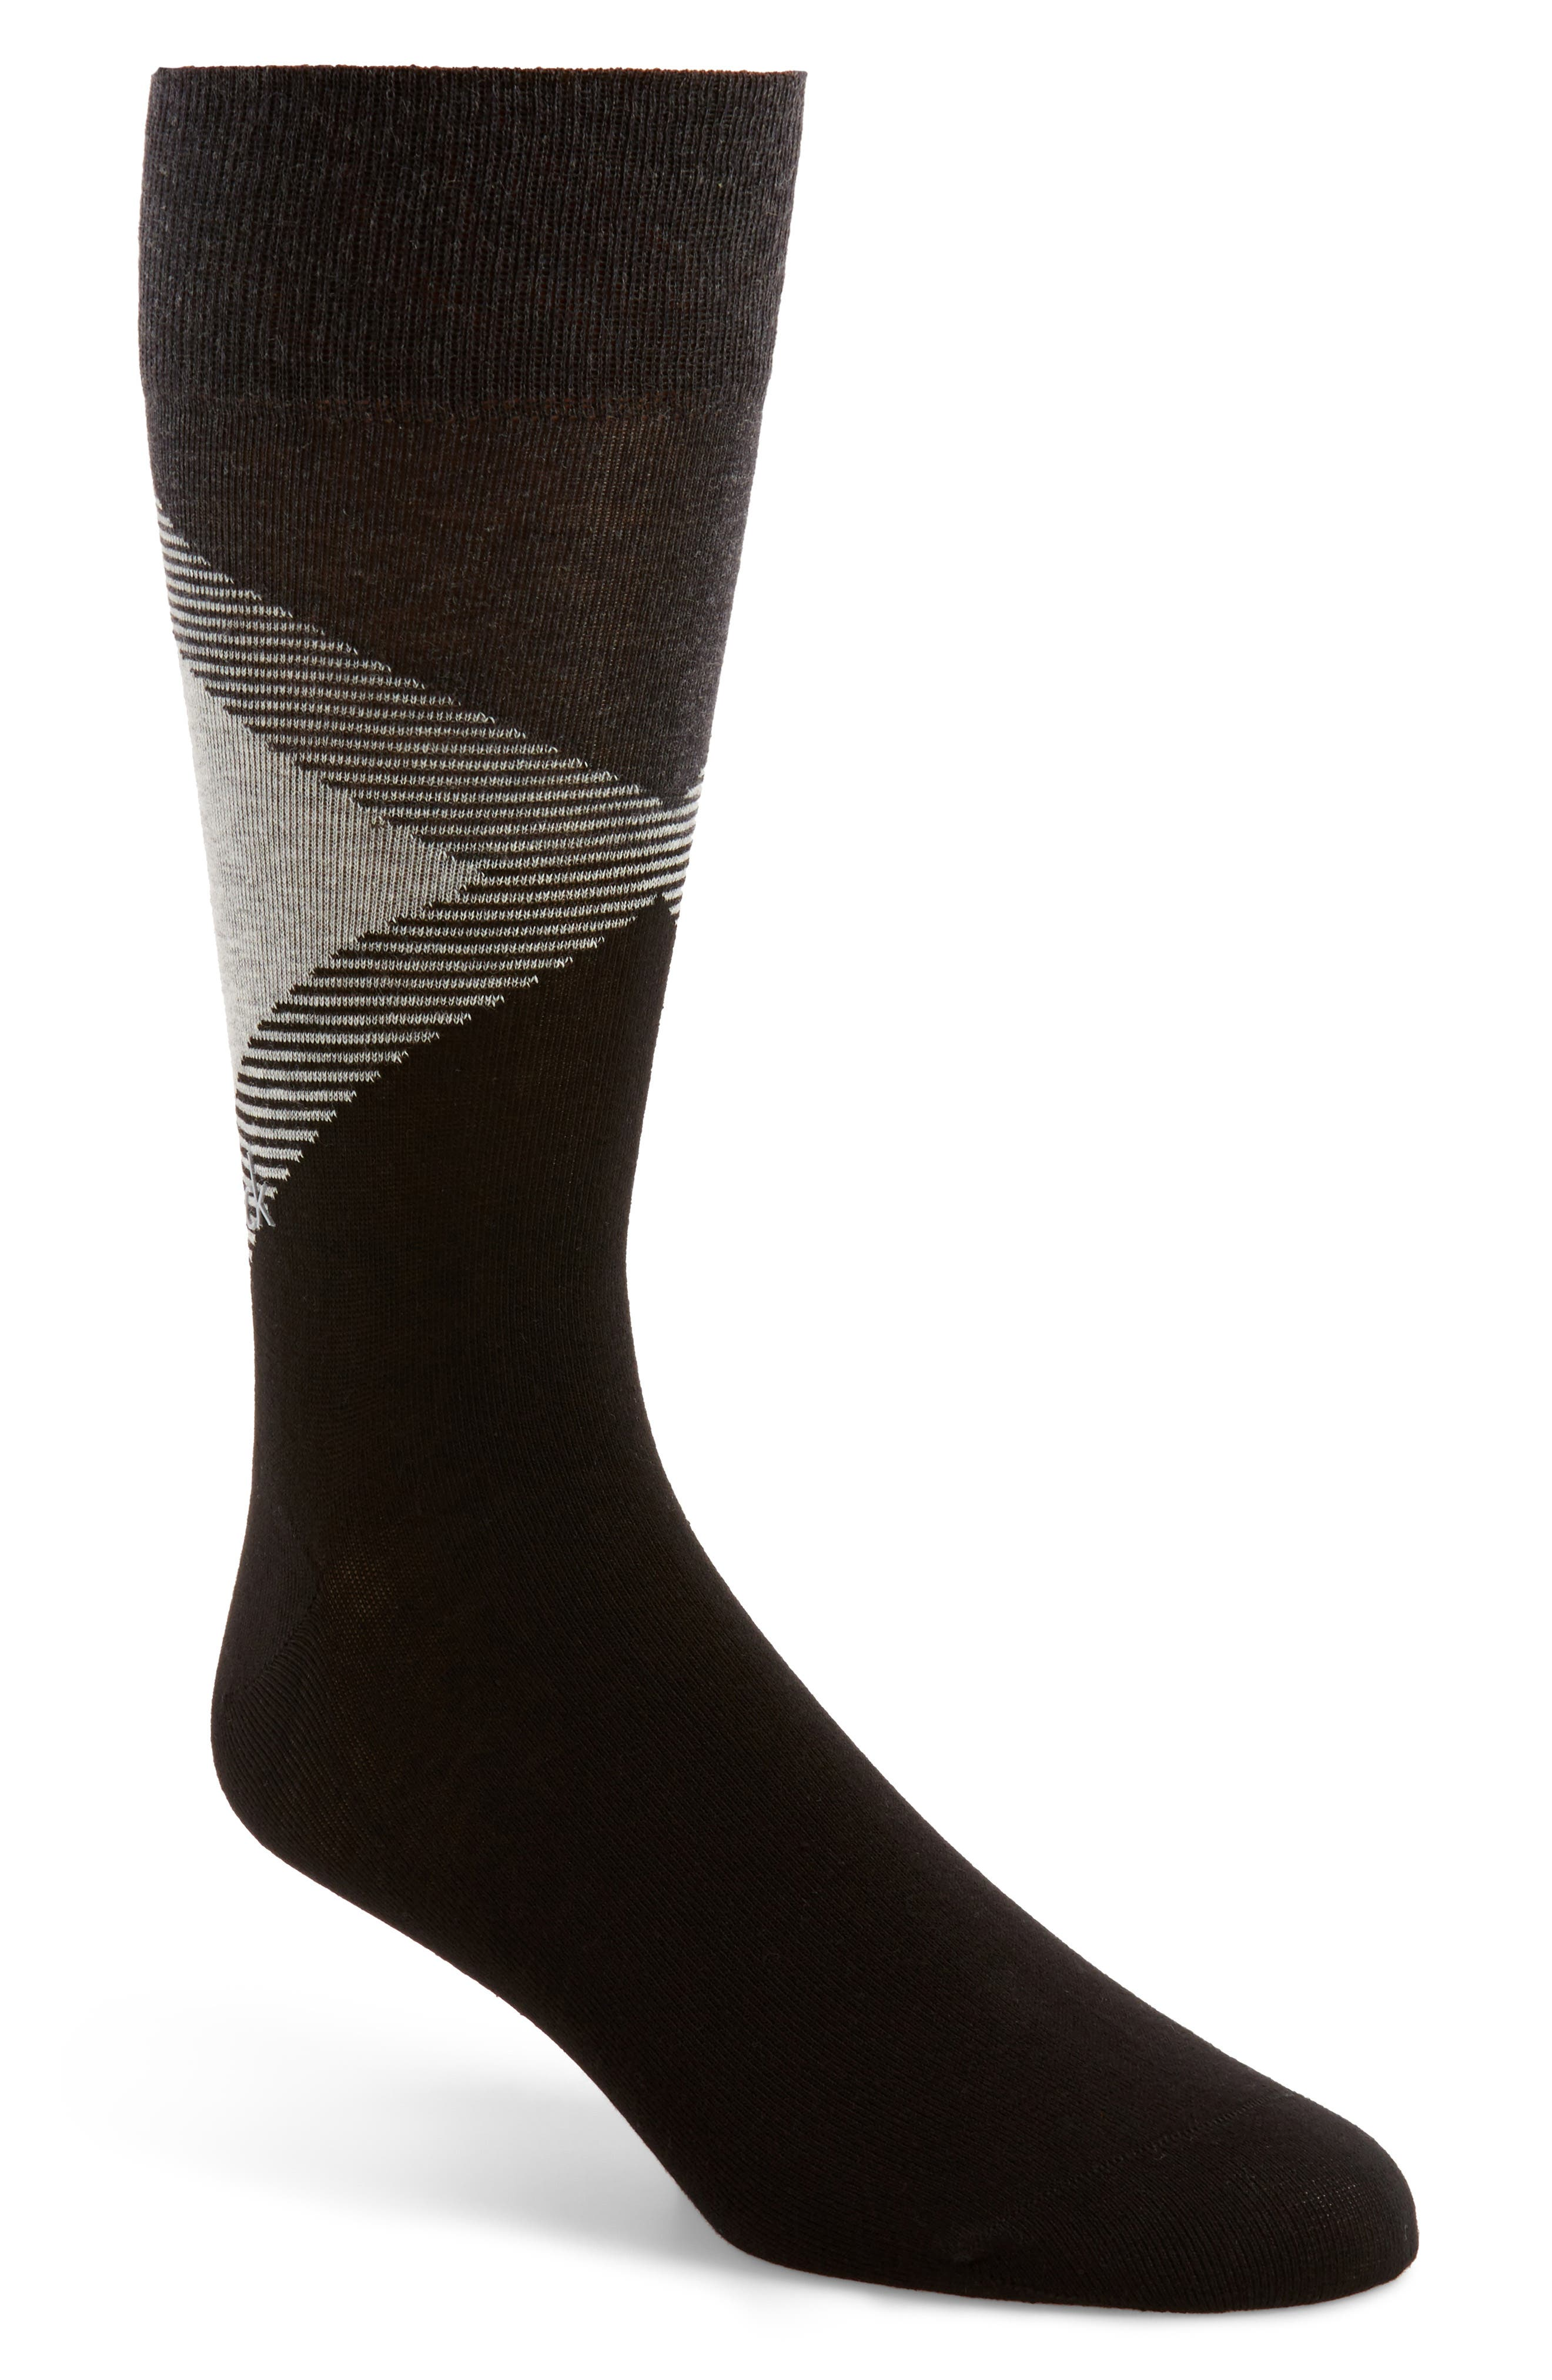 Big Diamond Socks,                         Main,                         color, 001